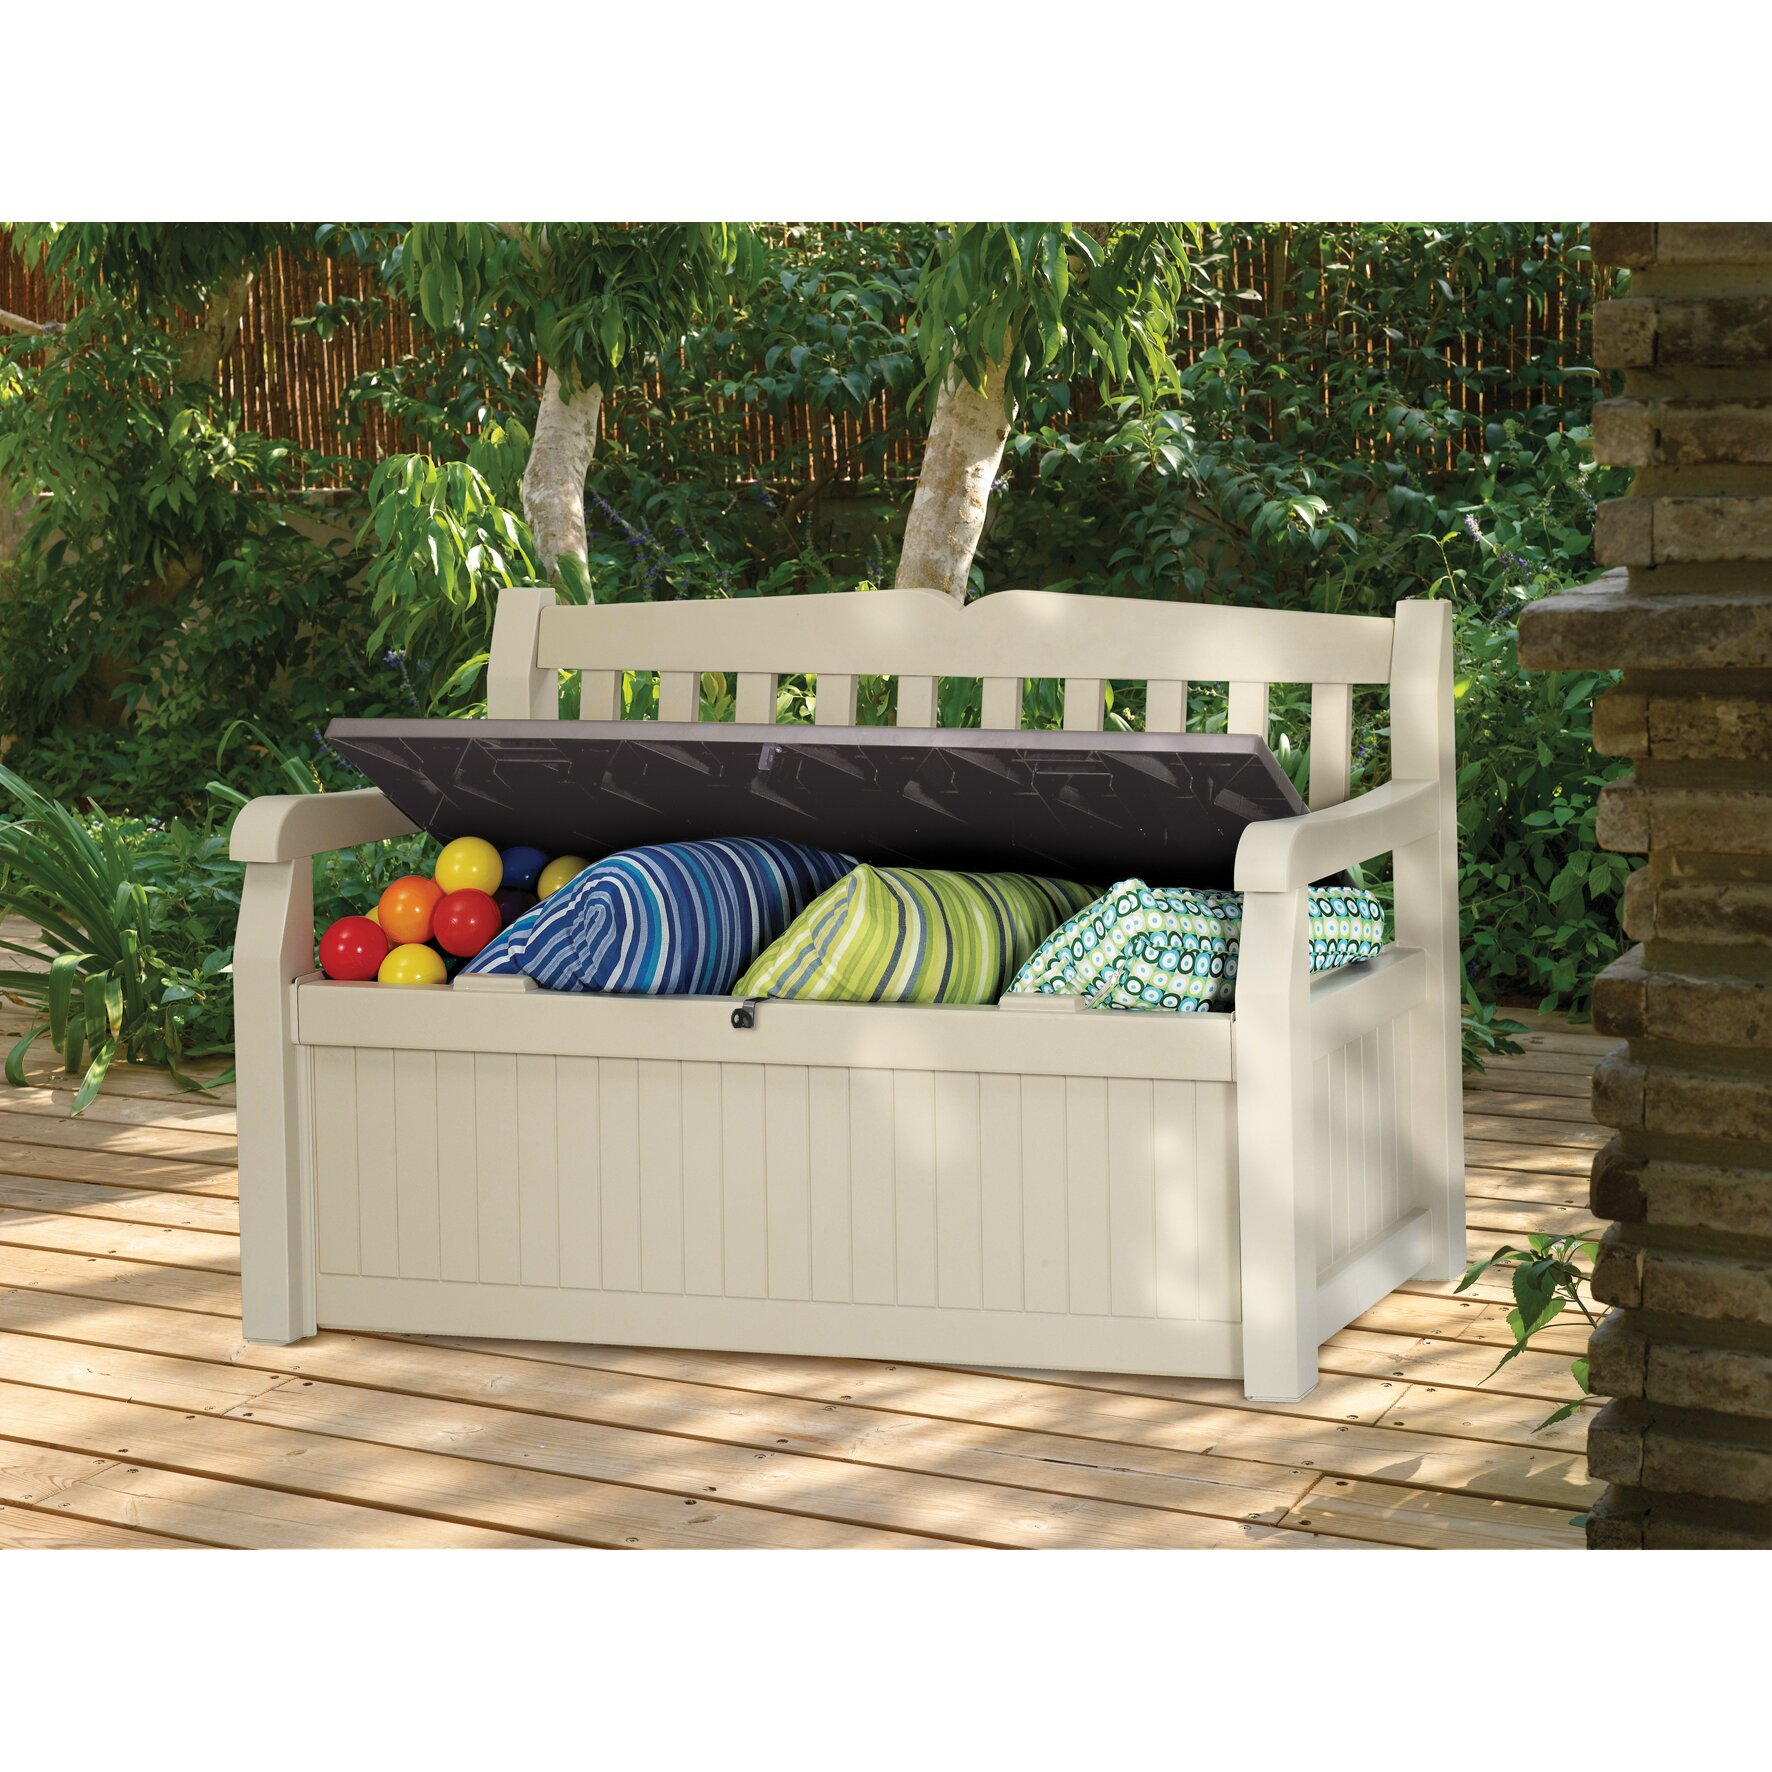 Keter All Weather Outdoor 70 Gallon Storage Bench Reviews Wayfair